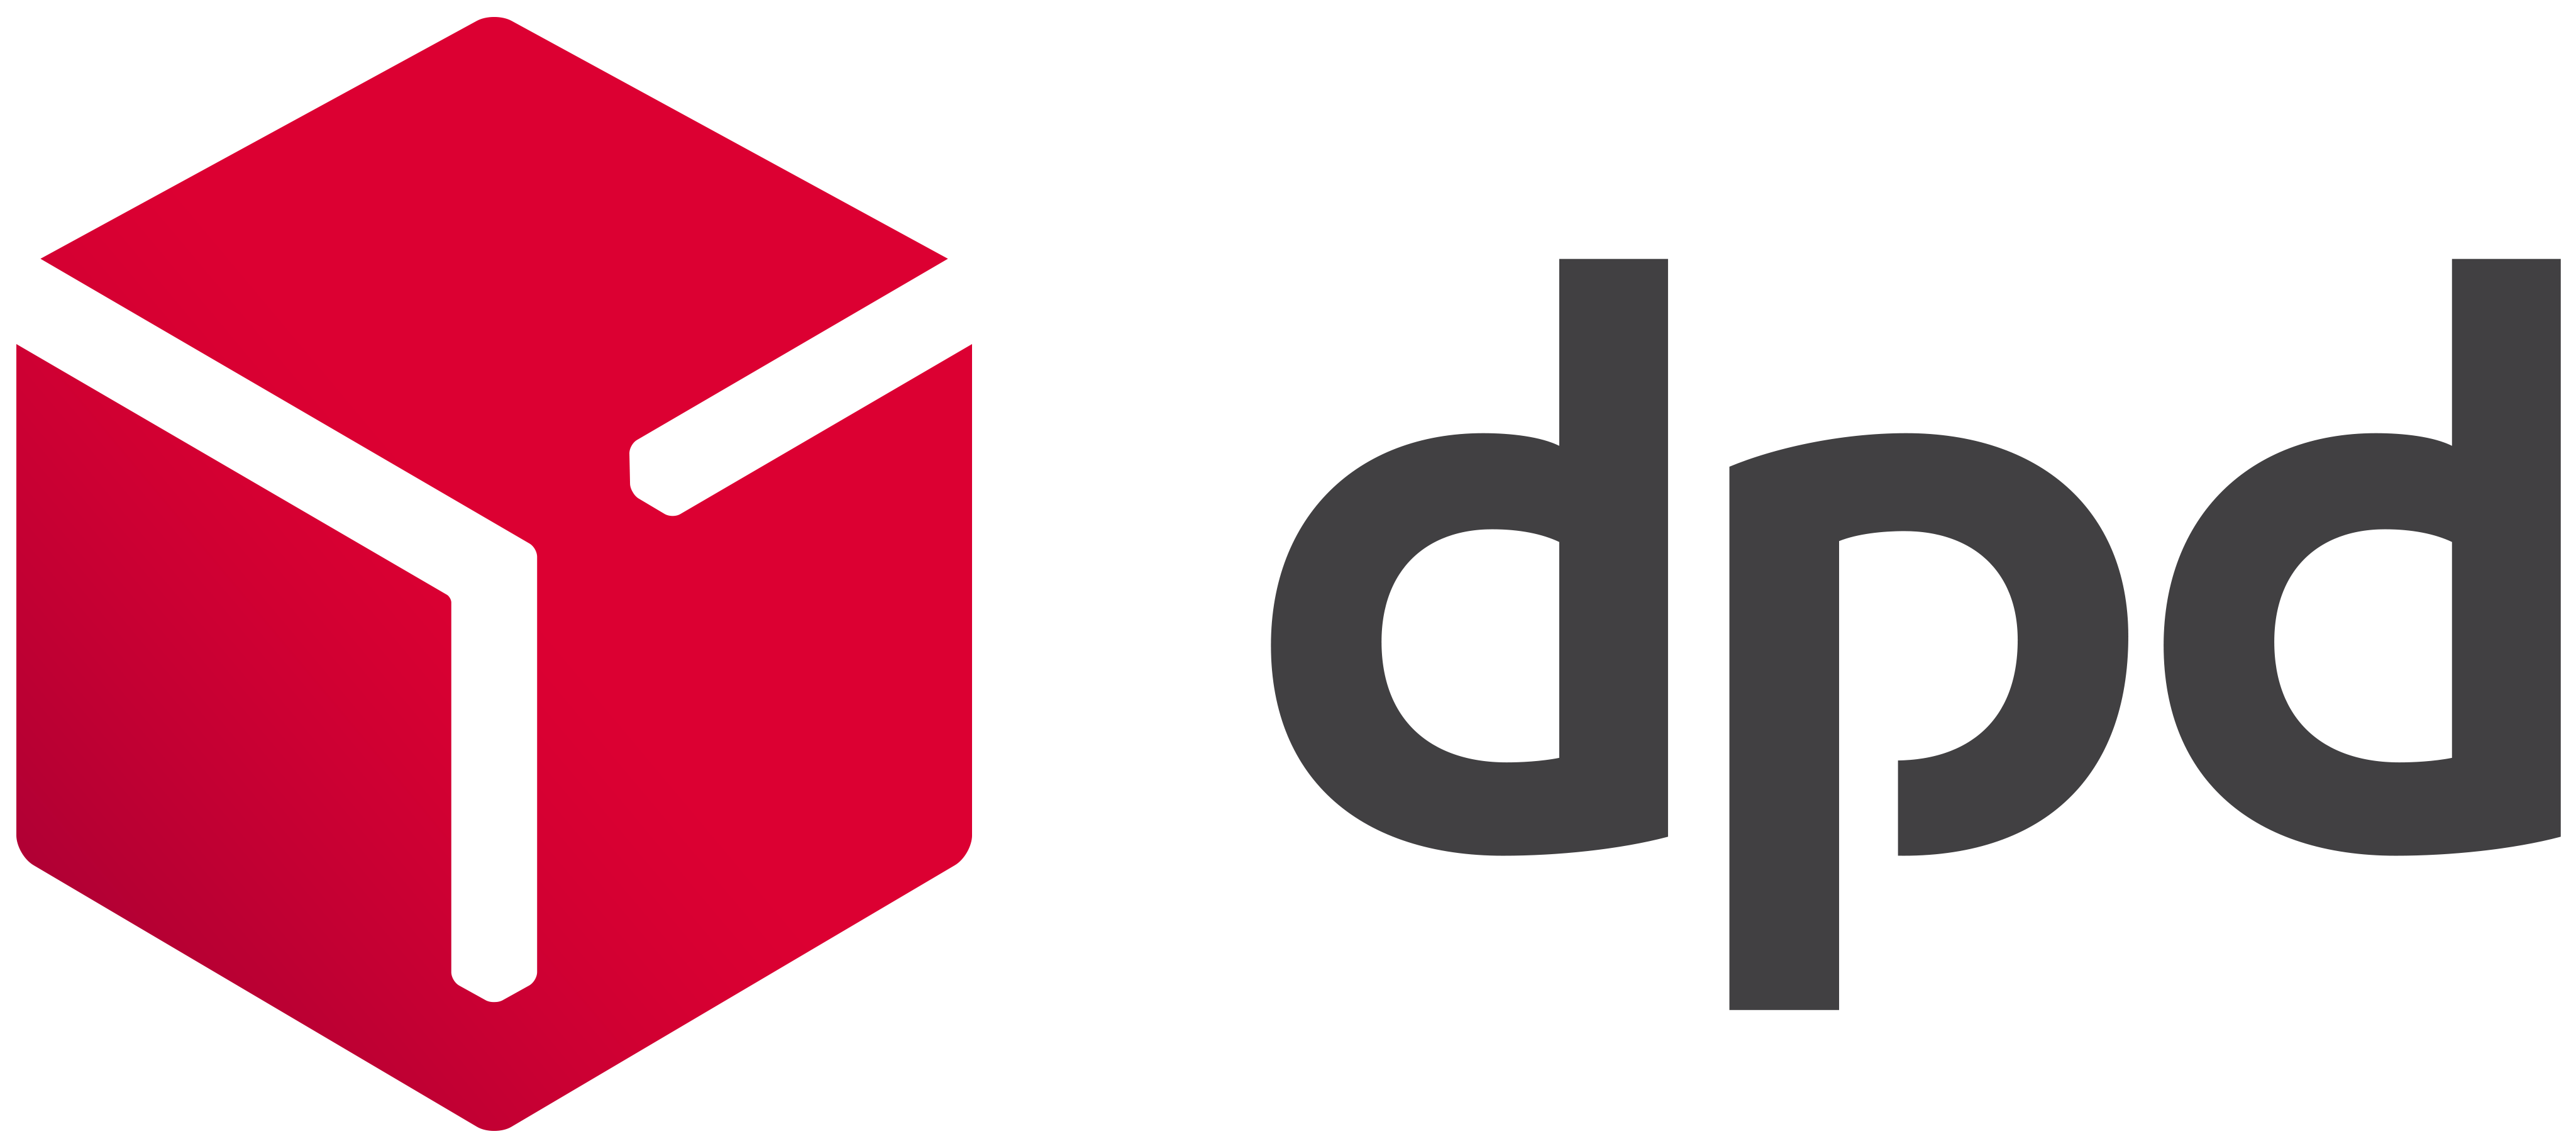 dpd red logo png #1145